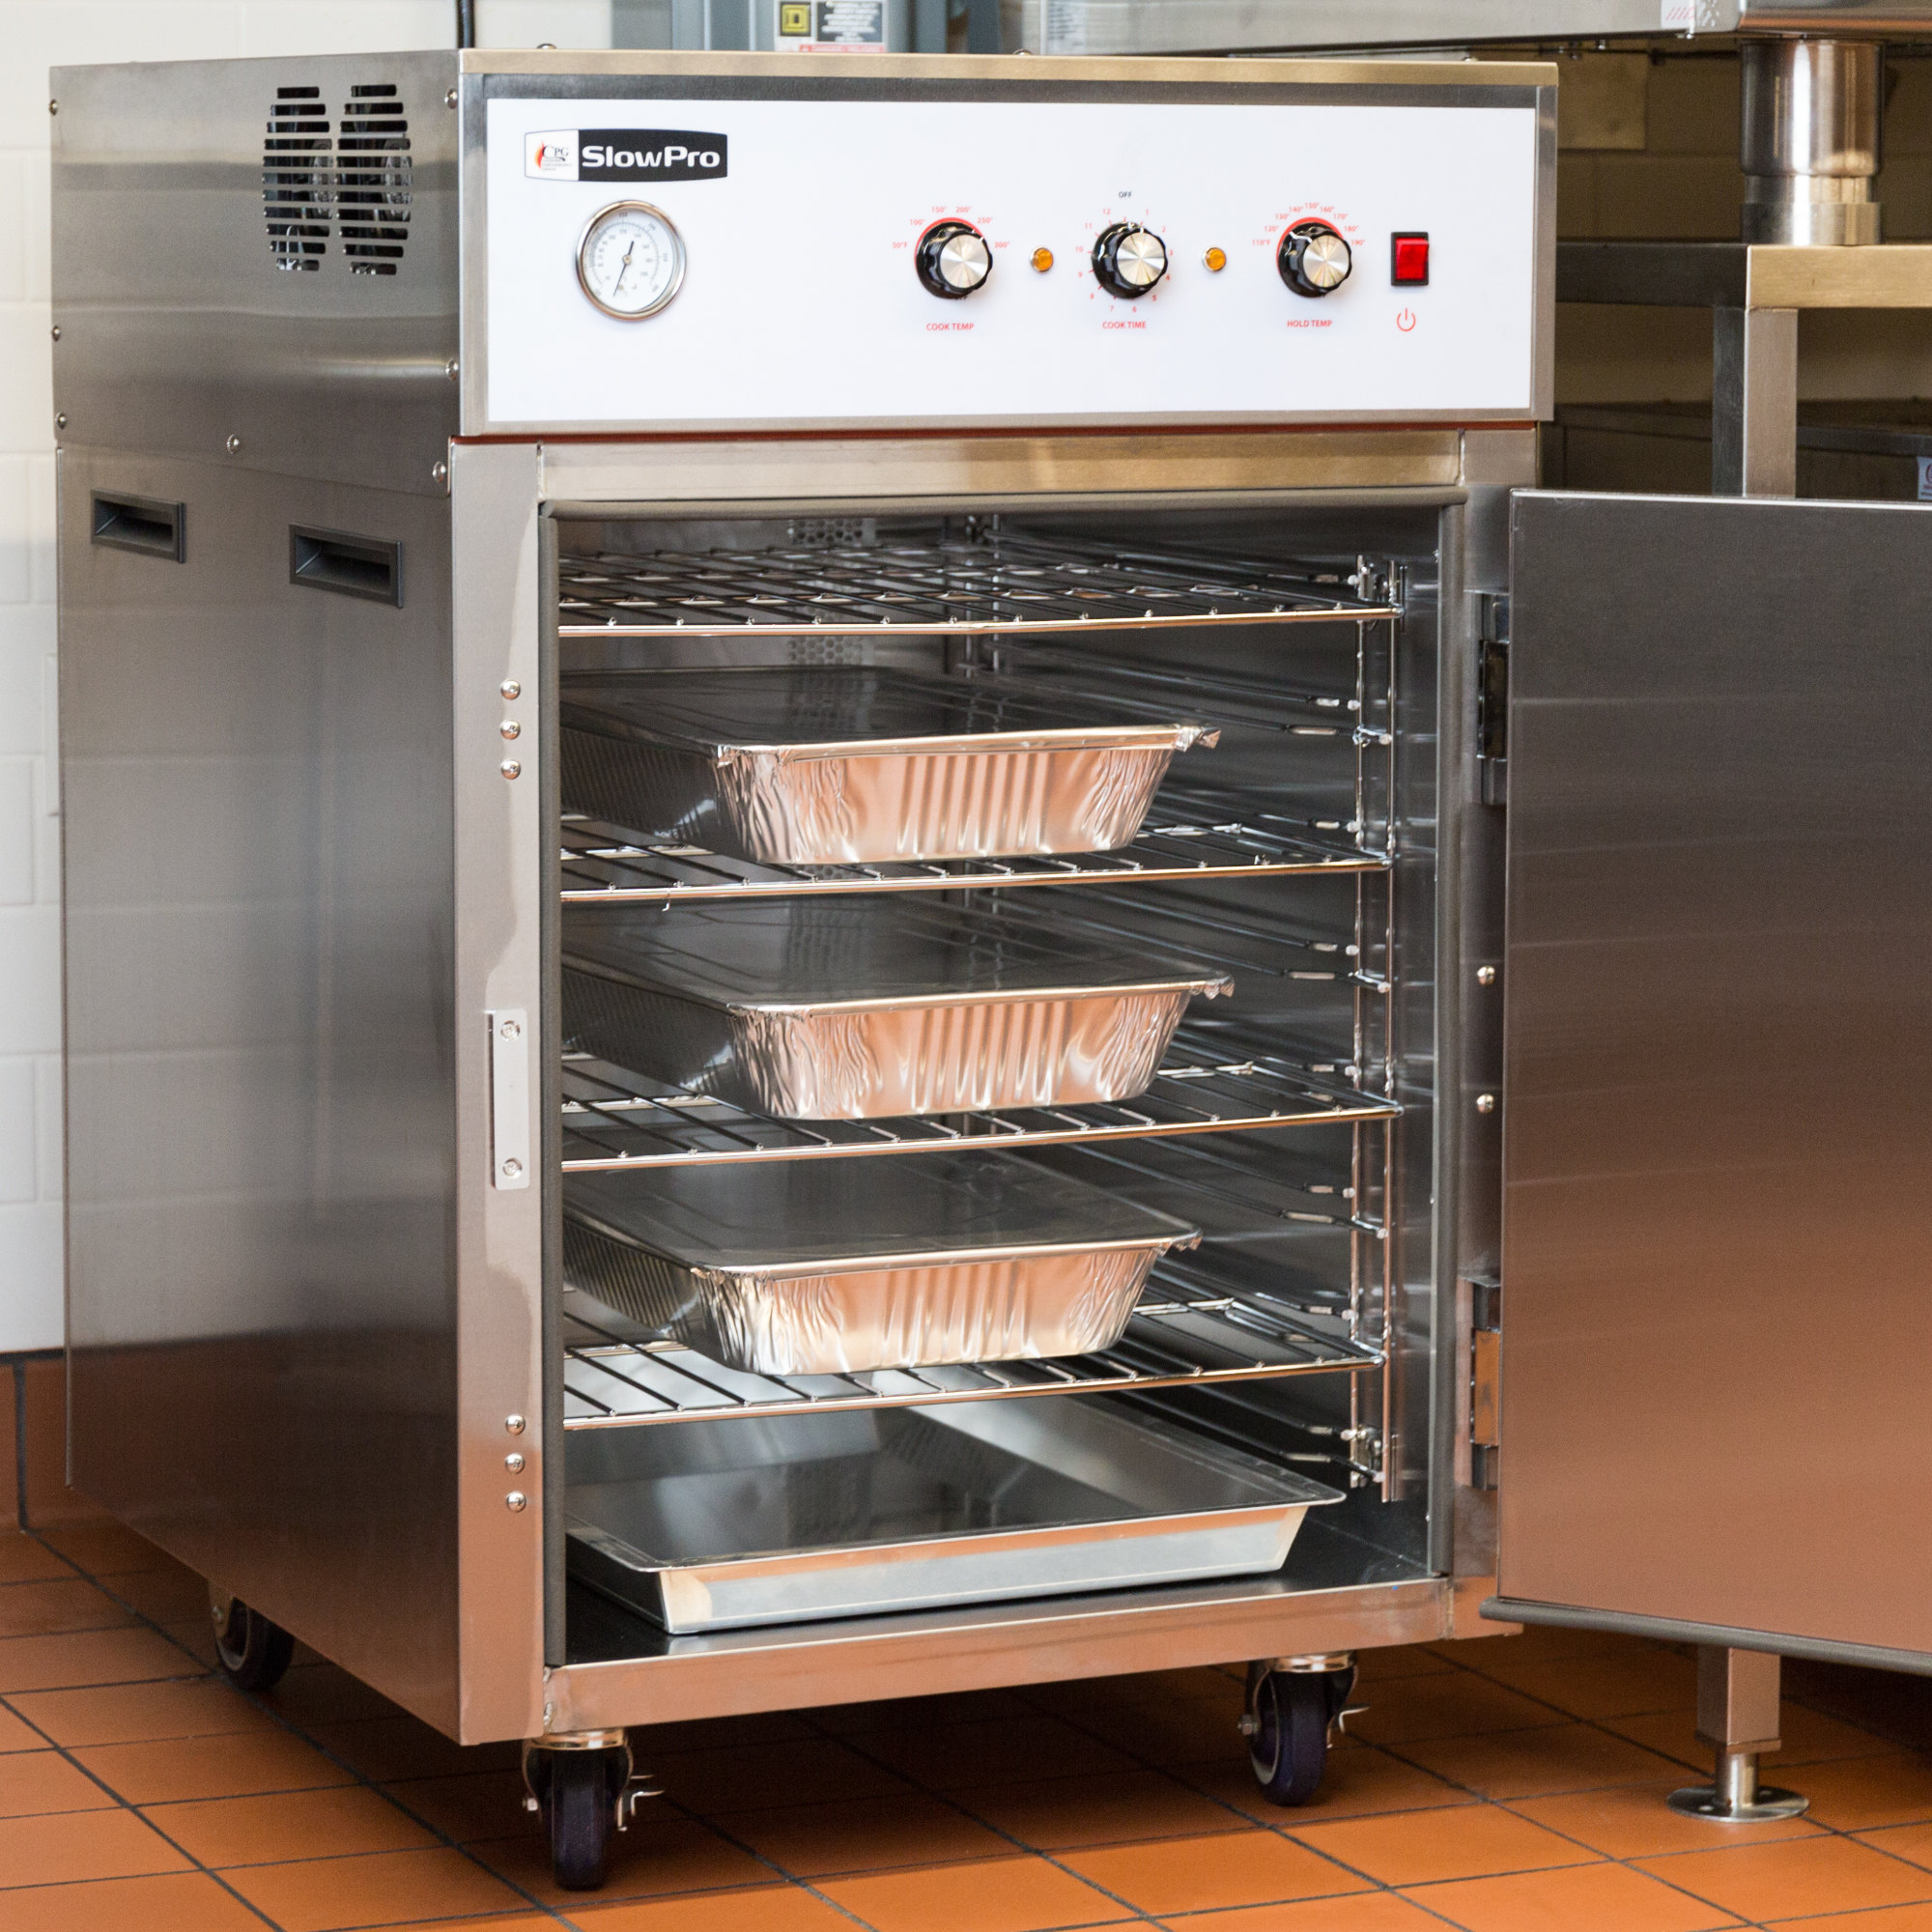 Cooking Performance Group CHSP1 SlowPro cook and hold oven with door open, showing interior shelving